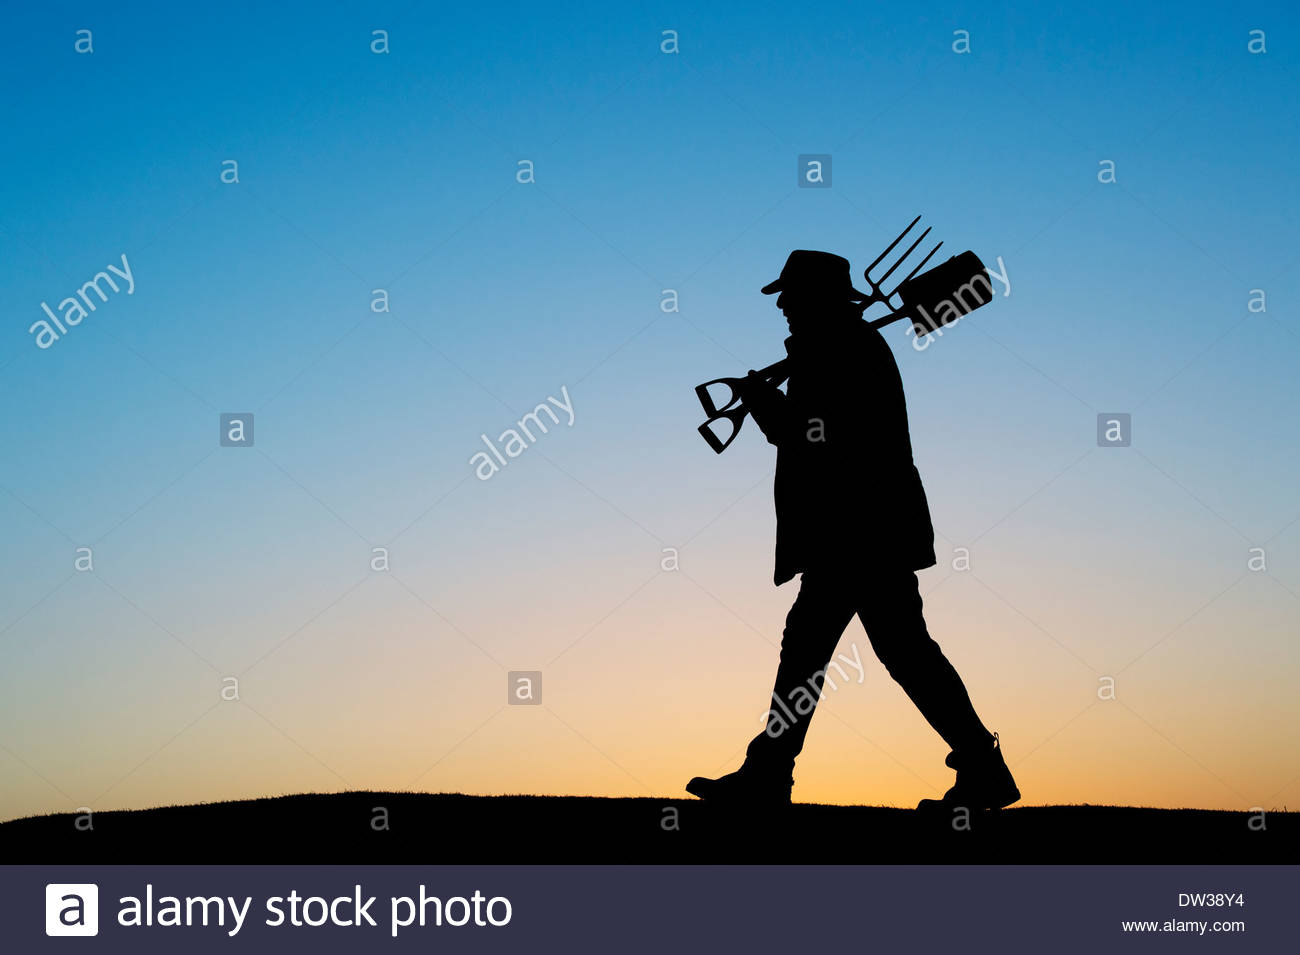 Gardener walking with spade and fork. Silhouette - Stock Image